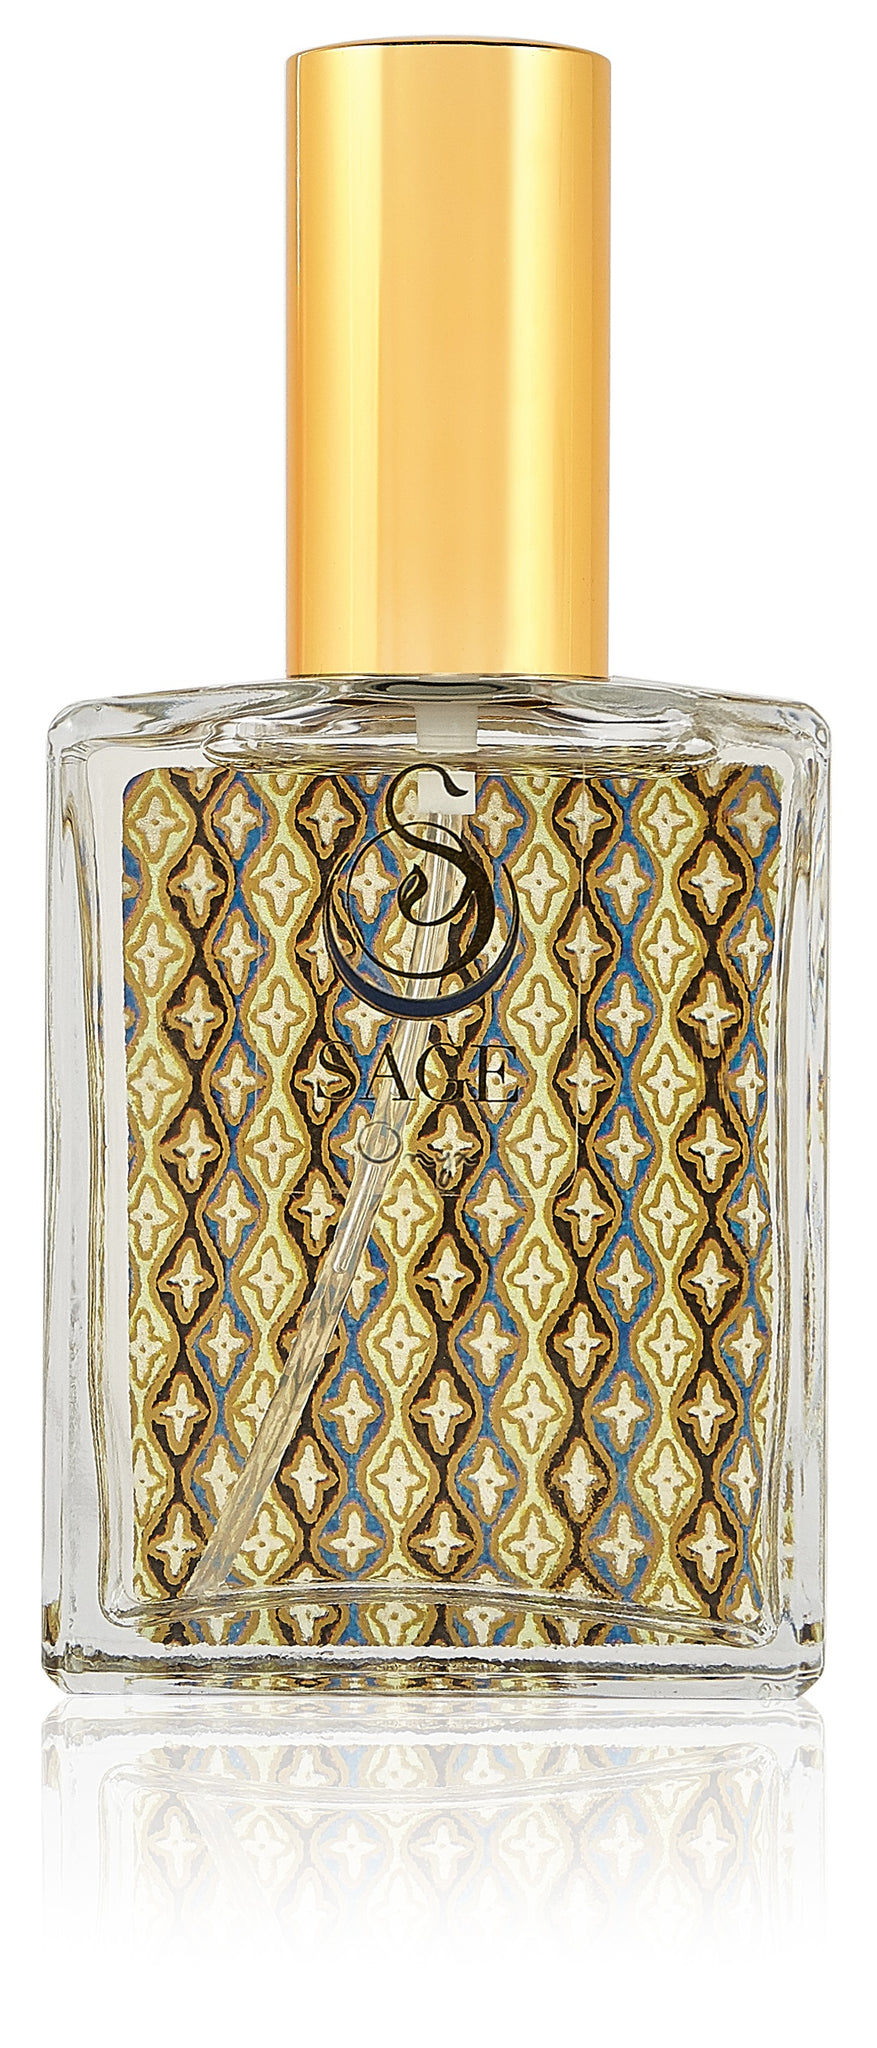 Onyx 2oz Perfume Eau de Toilette by Sage - The Sage Lifestyle